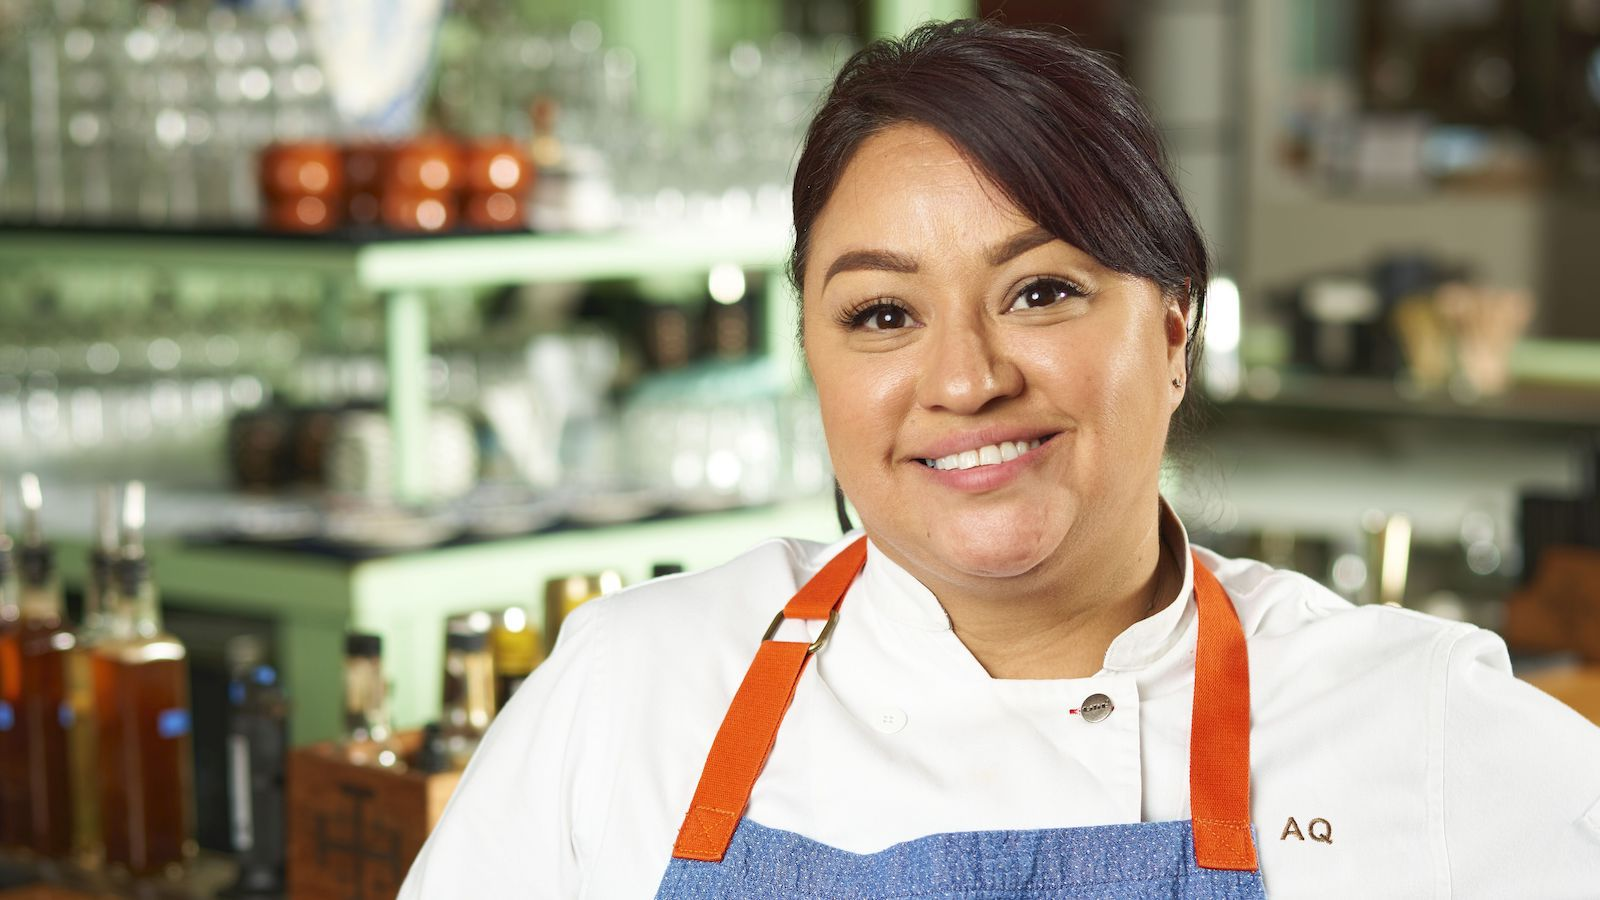 Anastacia Quiñones-Pittman of José is one of two honorary chef chairs for this year's Dallas 24 Hour Club fundraiser.